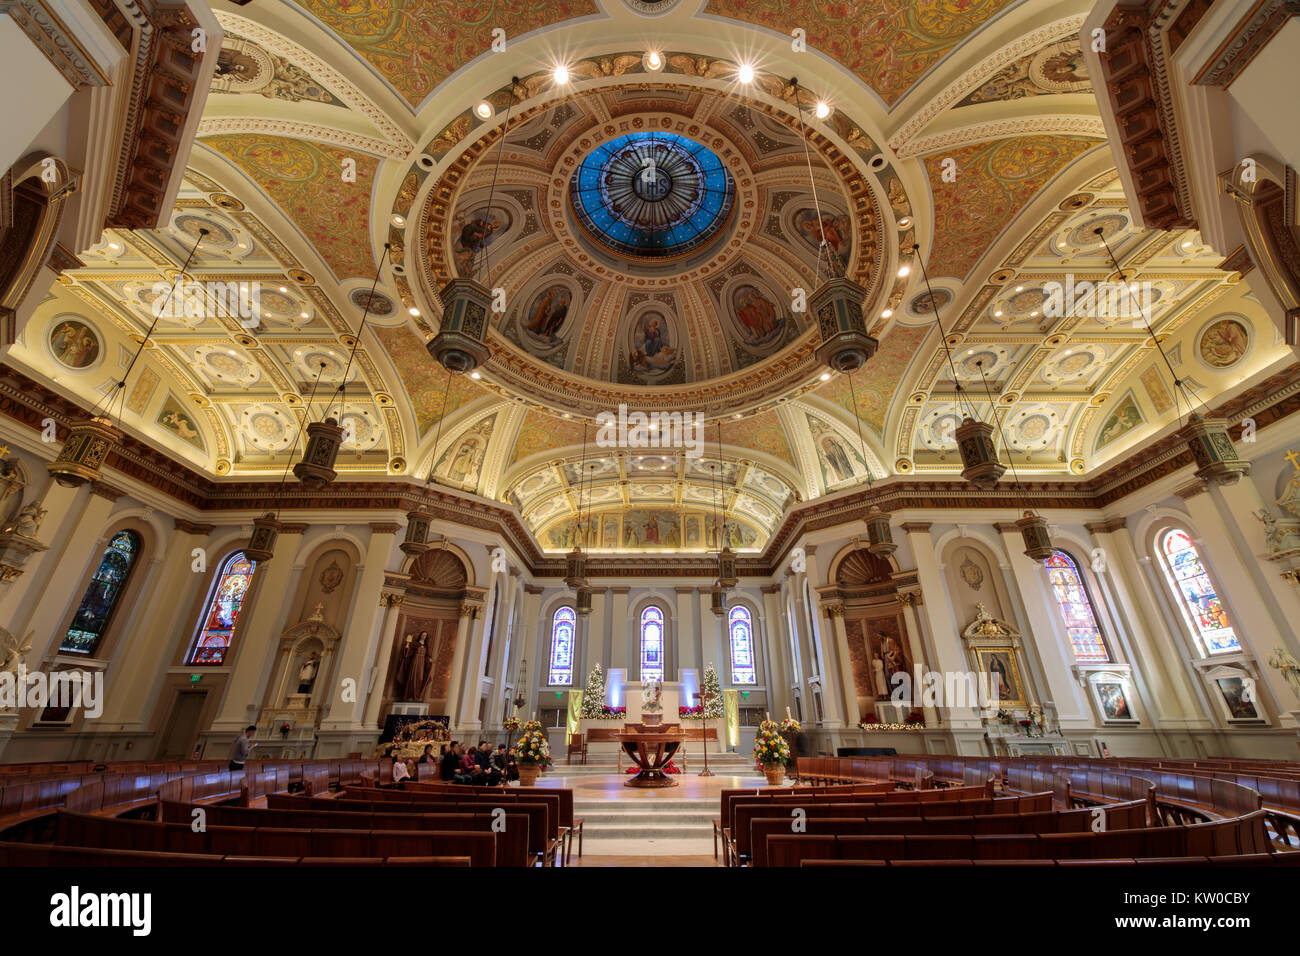 speed dating events in san jose cathedral basilica